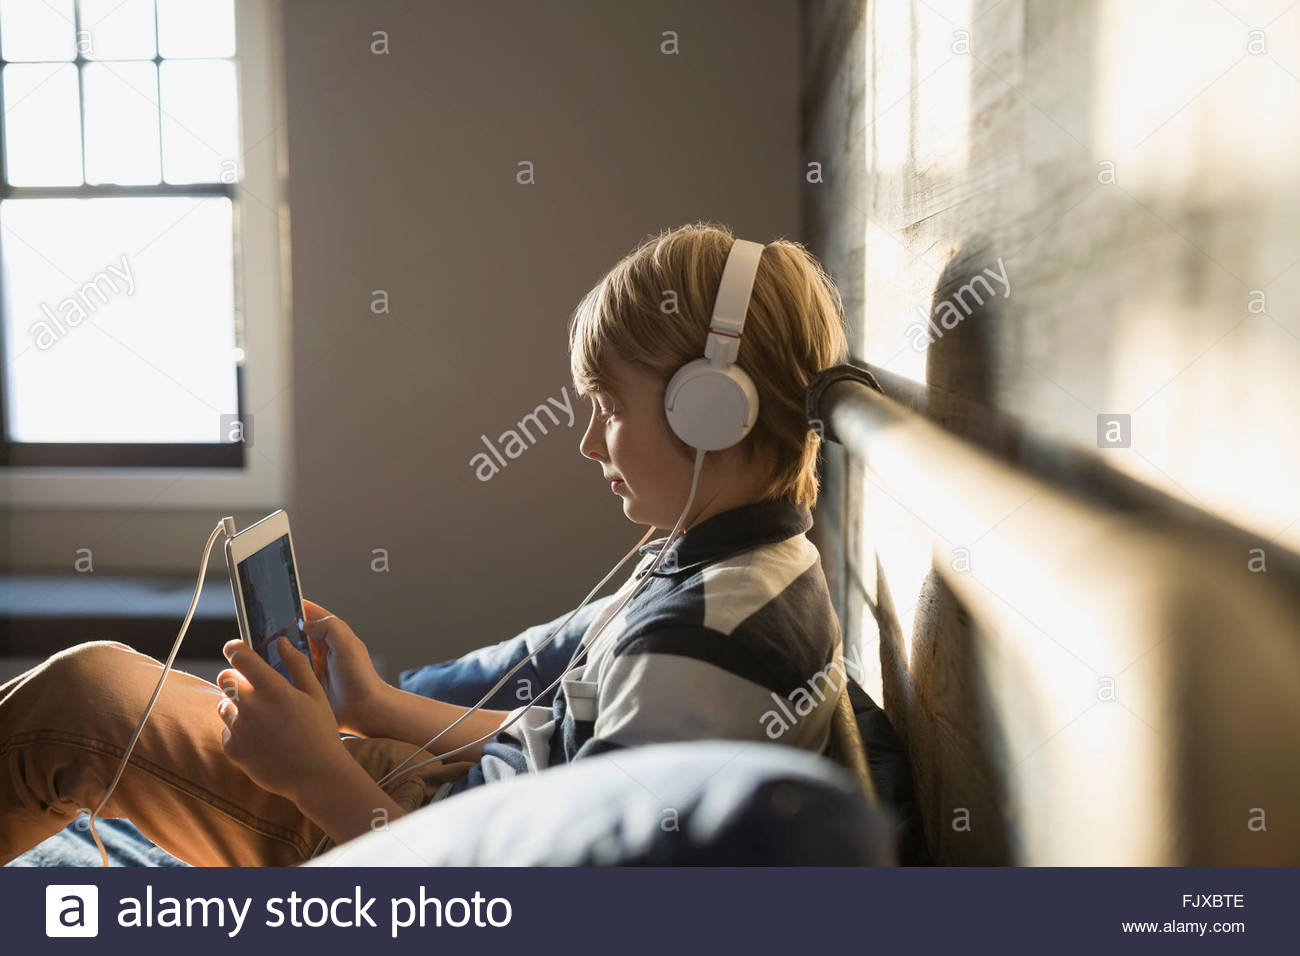 Boy with headphones using digital tablet Stock Photo